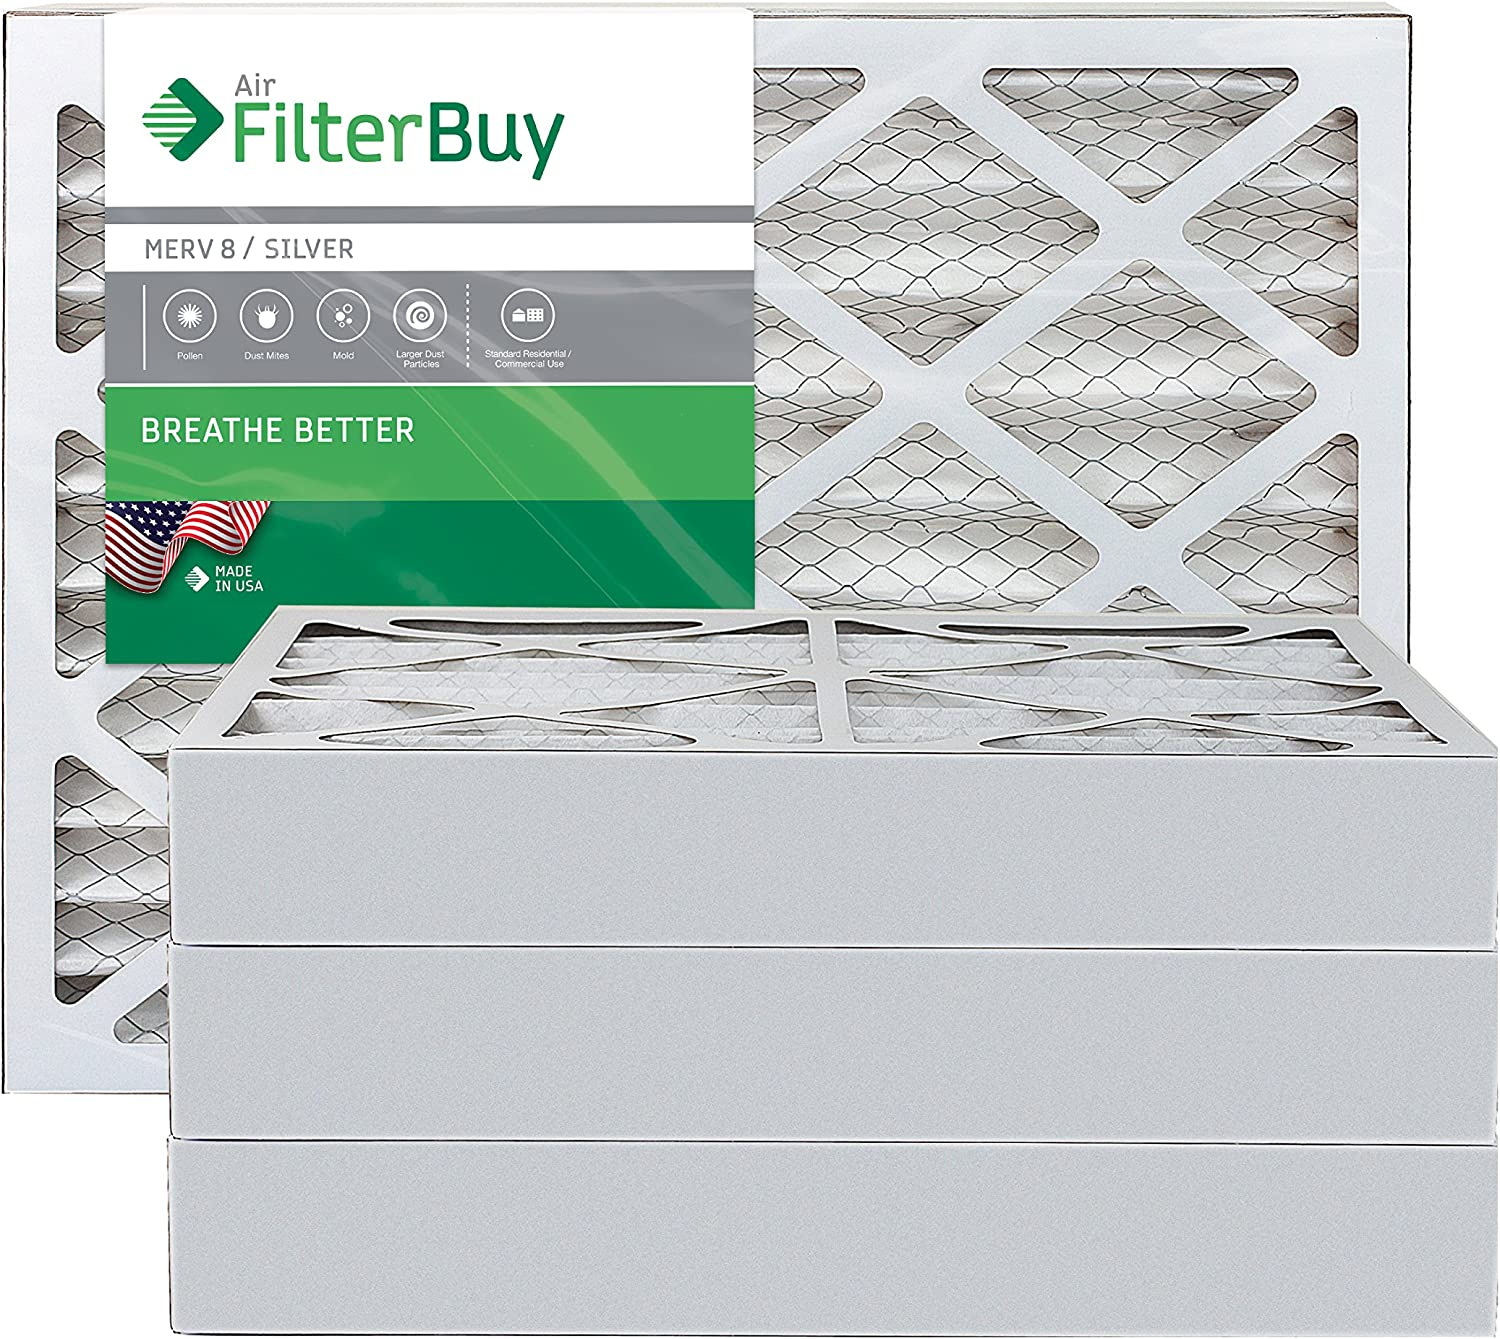 FilterBuy 20x20x4 MERV 8 Pleated AC Furnace Air Filter, (Pack of 4 Filters), 20x20x4 – Silver